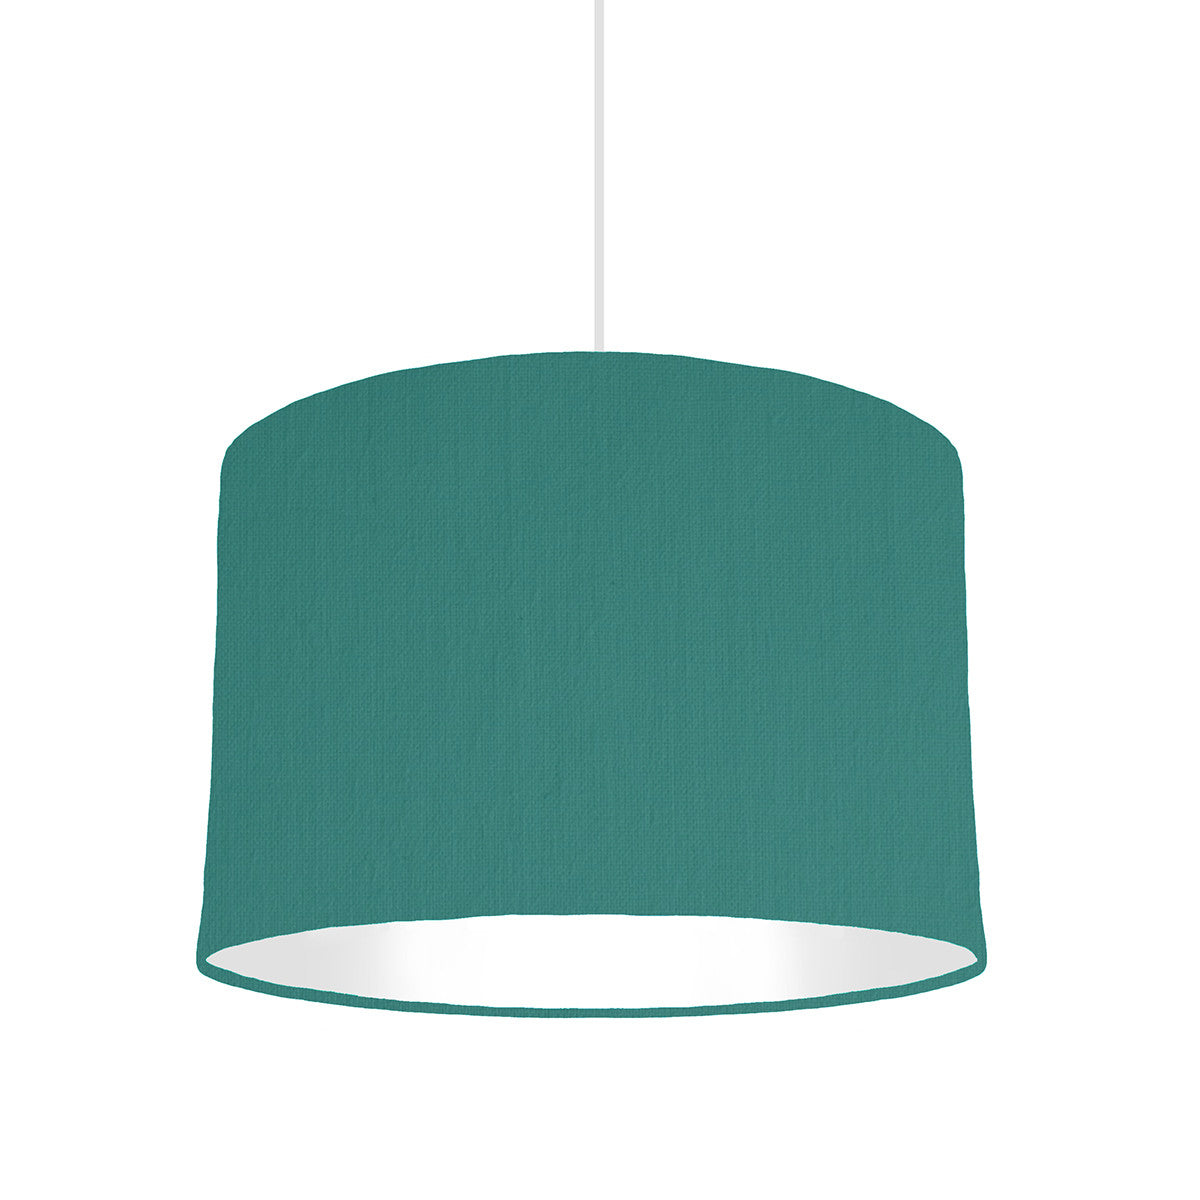 Jade Green Lampshade With White Lining, 30cm wide